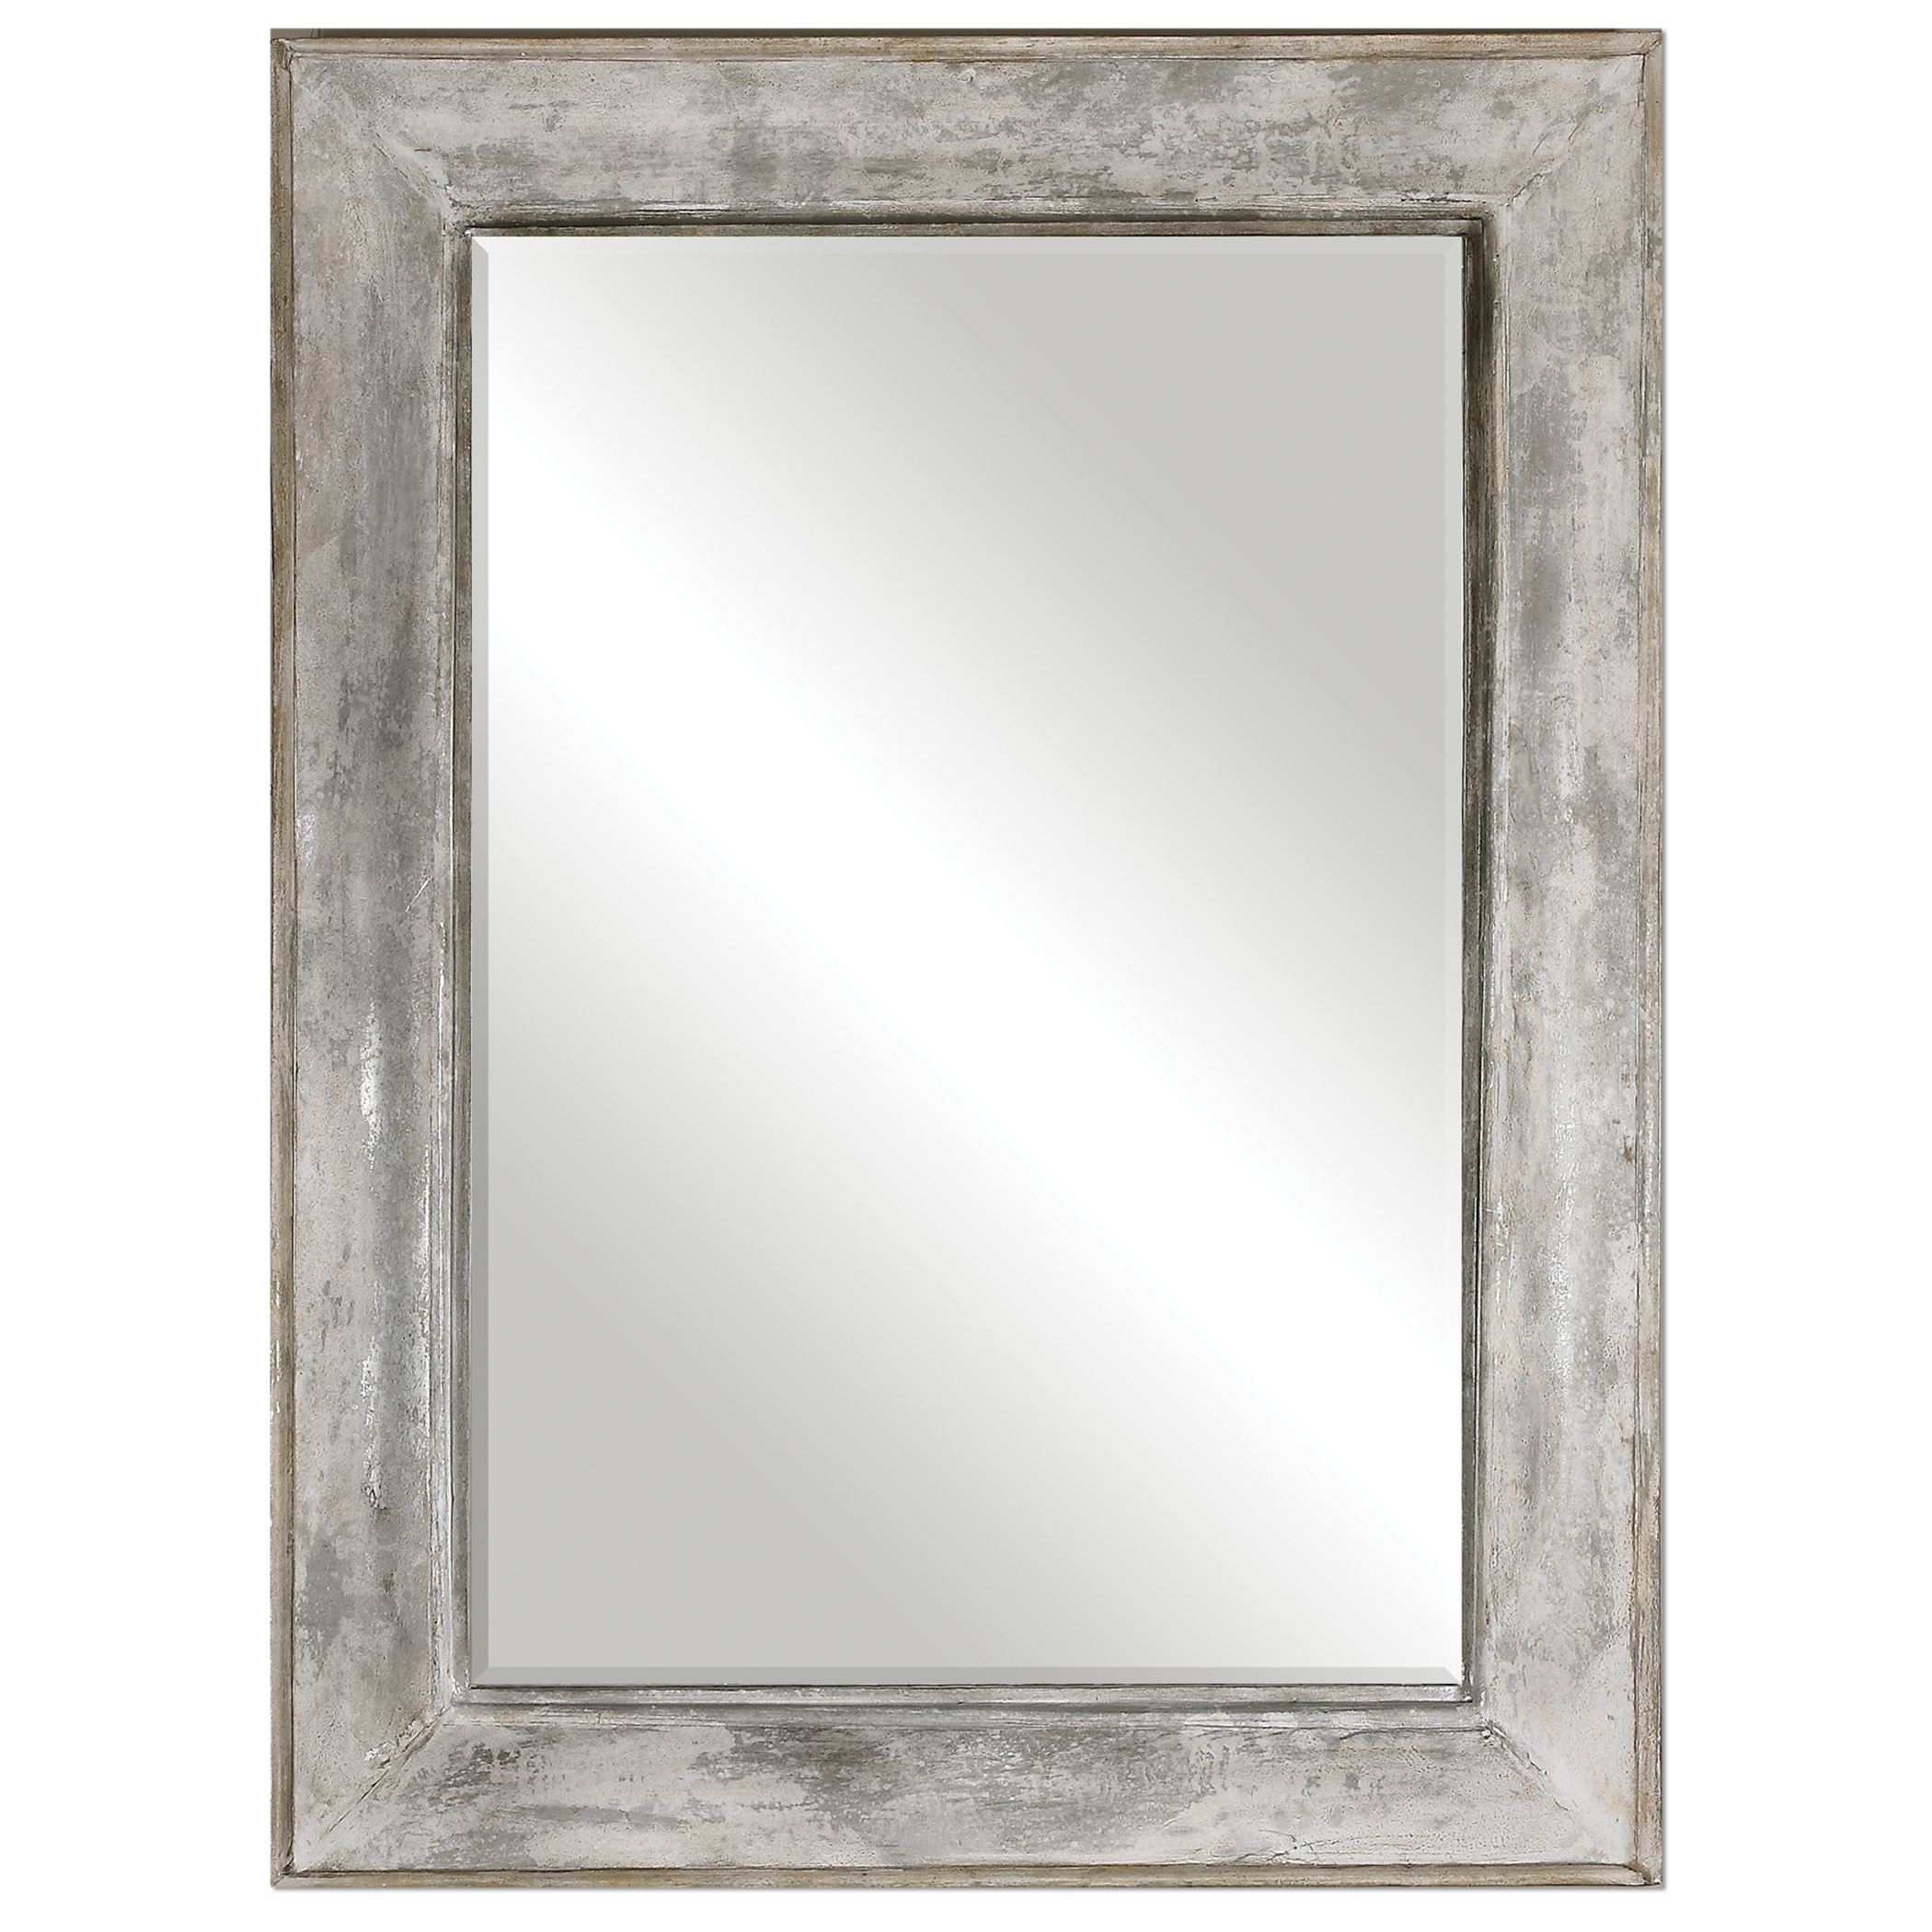 Uttermost Mirrors Morava Rust Aged Gray Mirror - Item Number: 12926